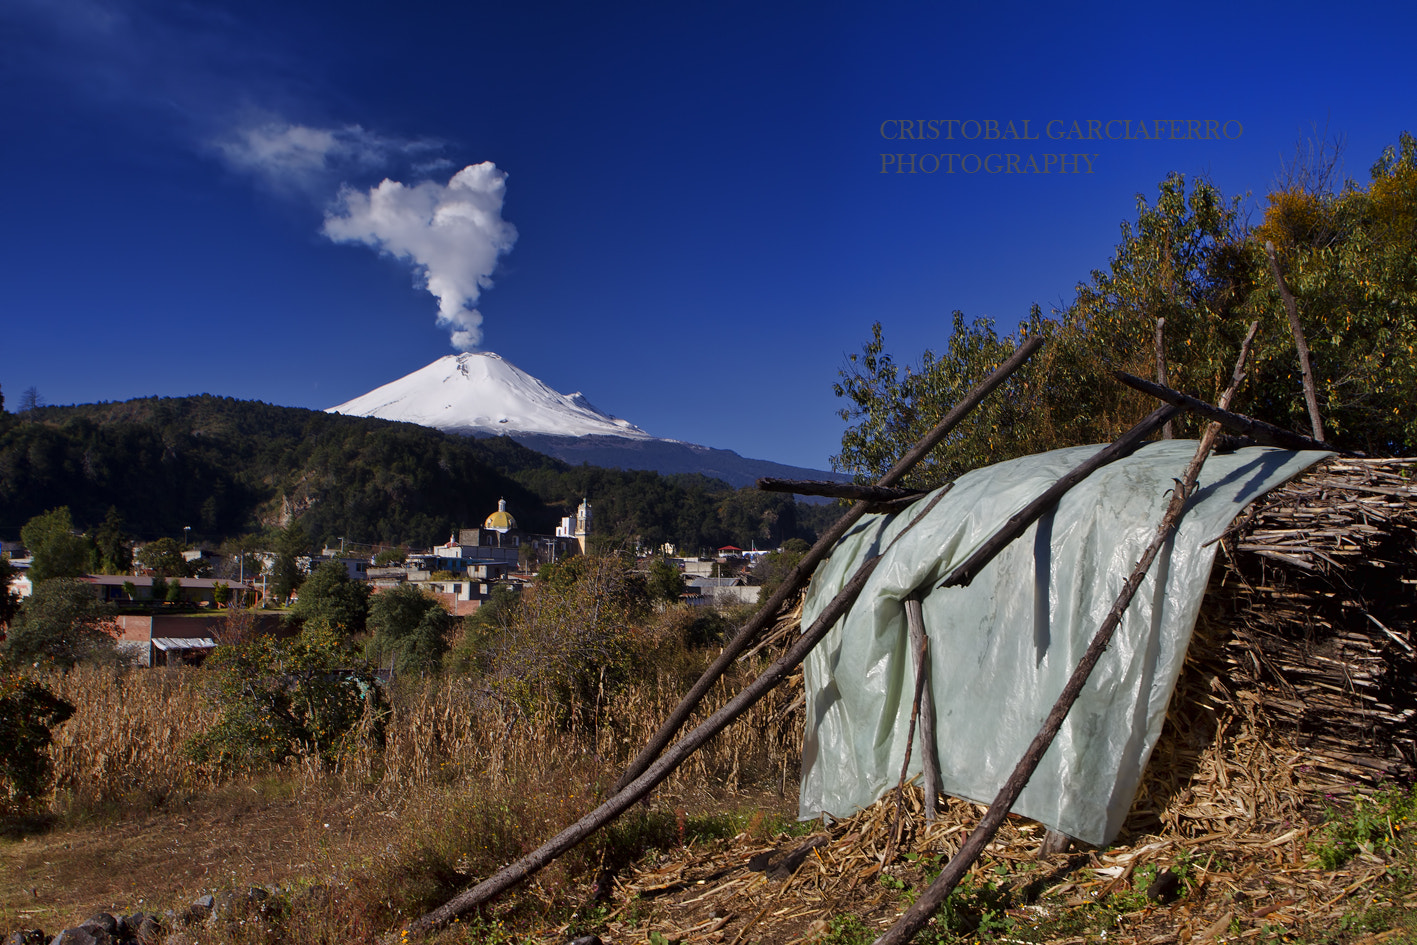 Photograph Small town and volcano by Cristobal Garciaferro Rubio on 500px